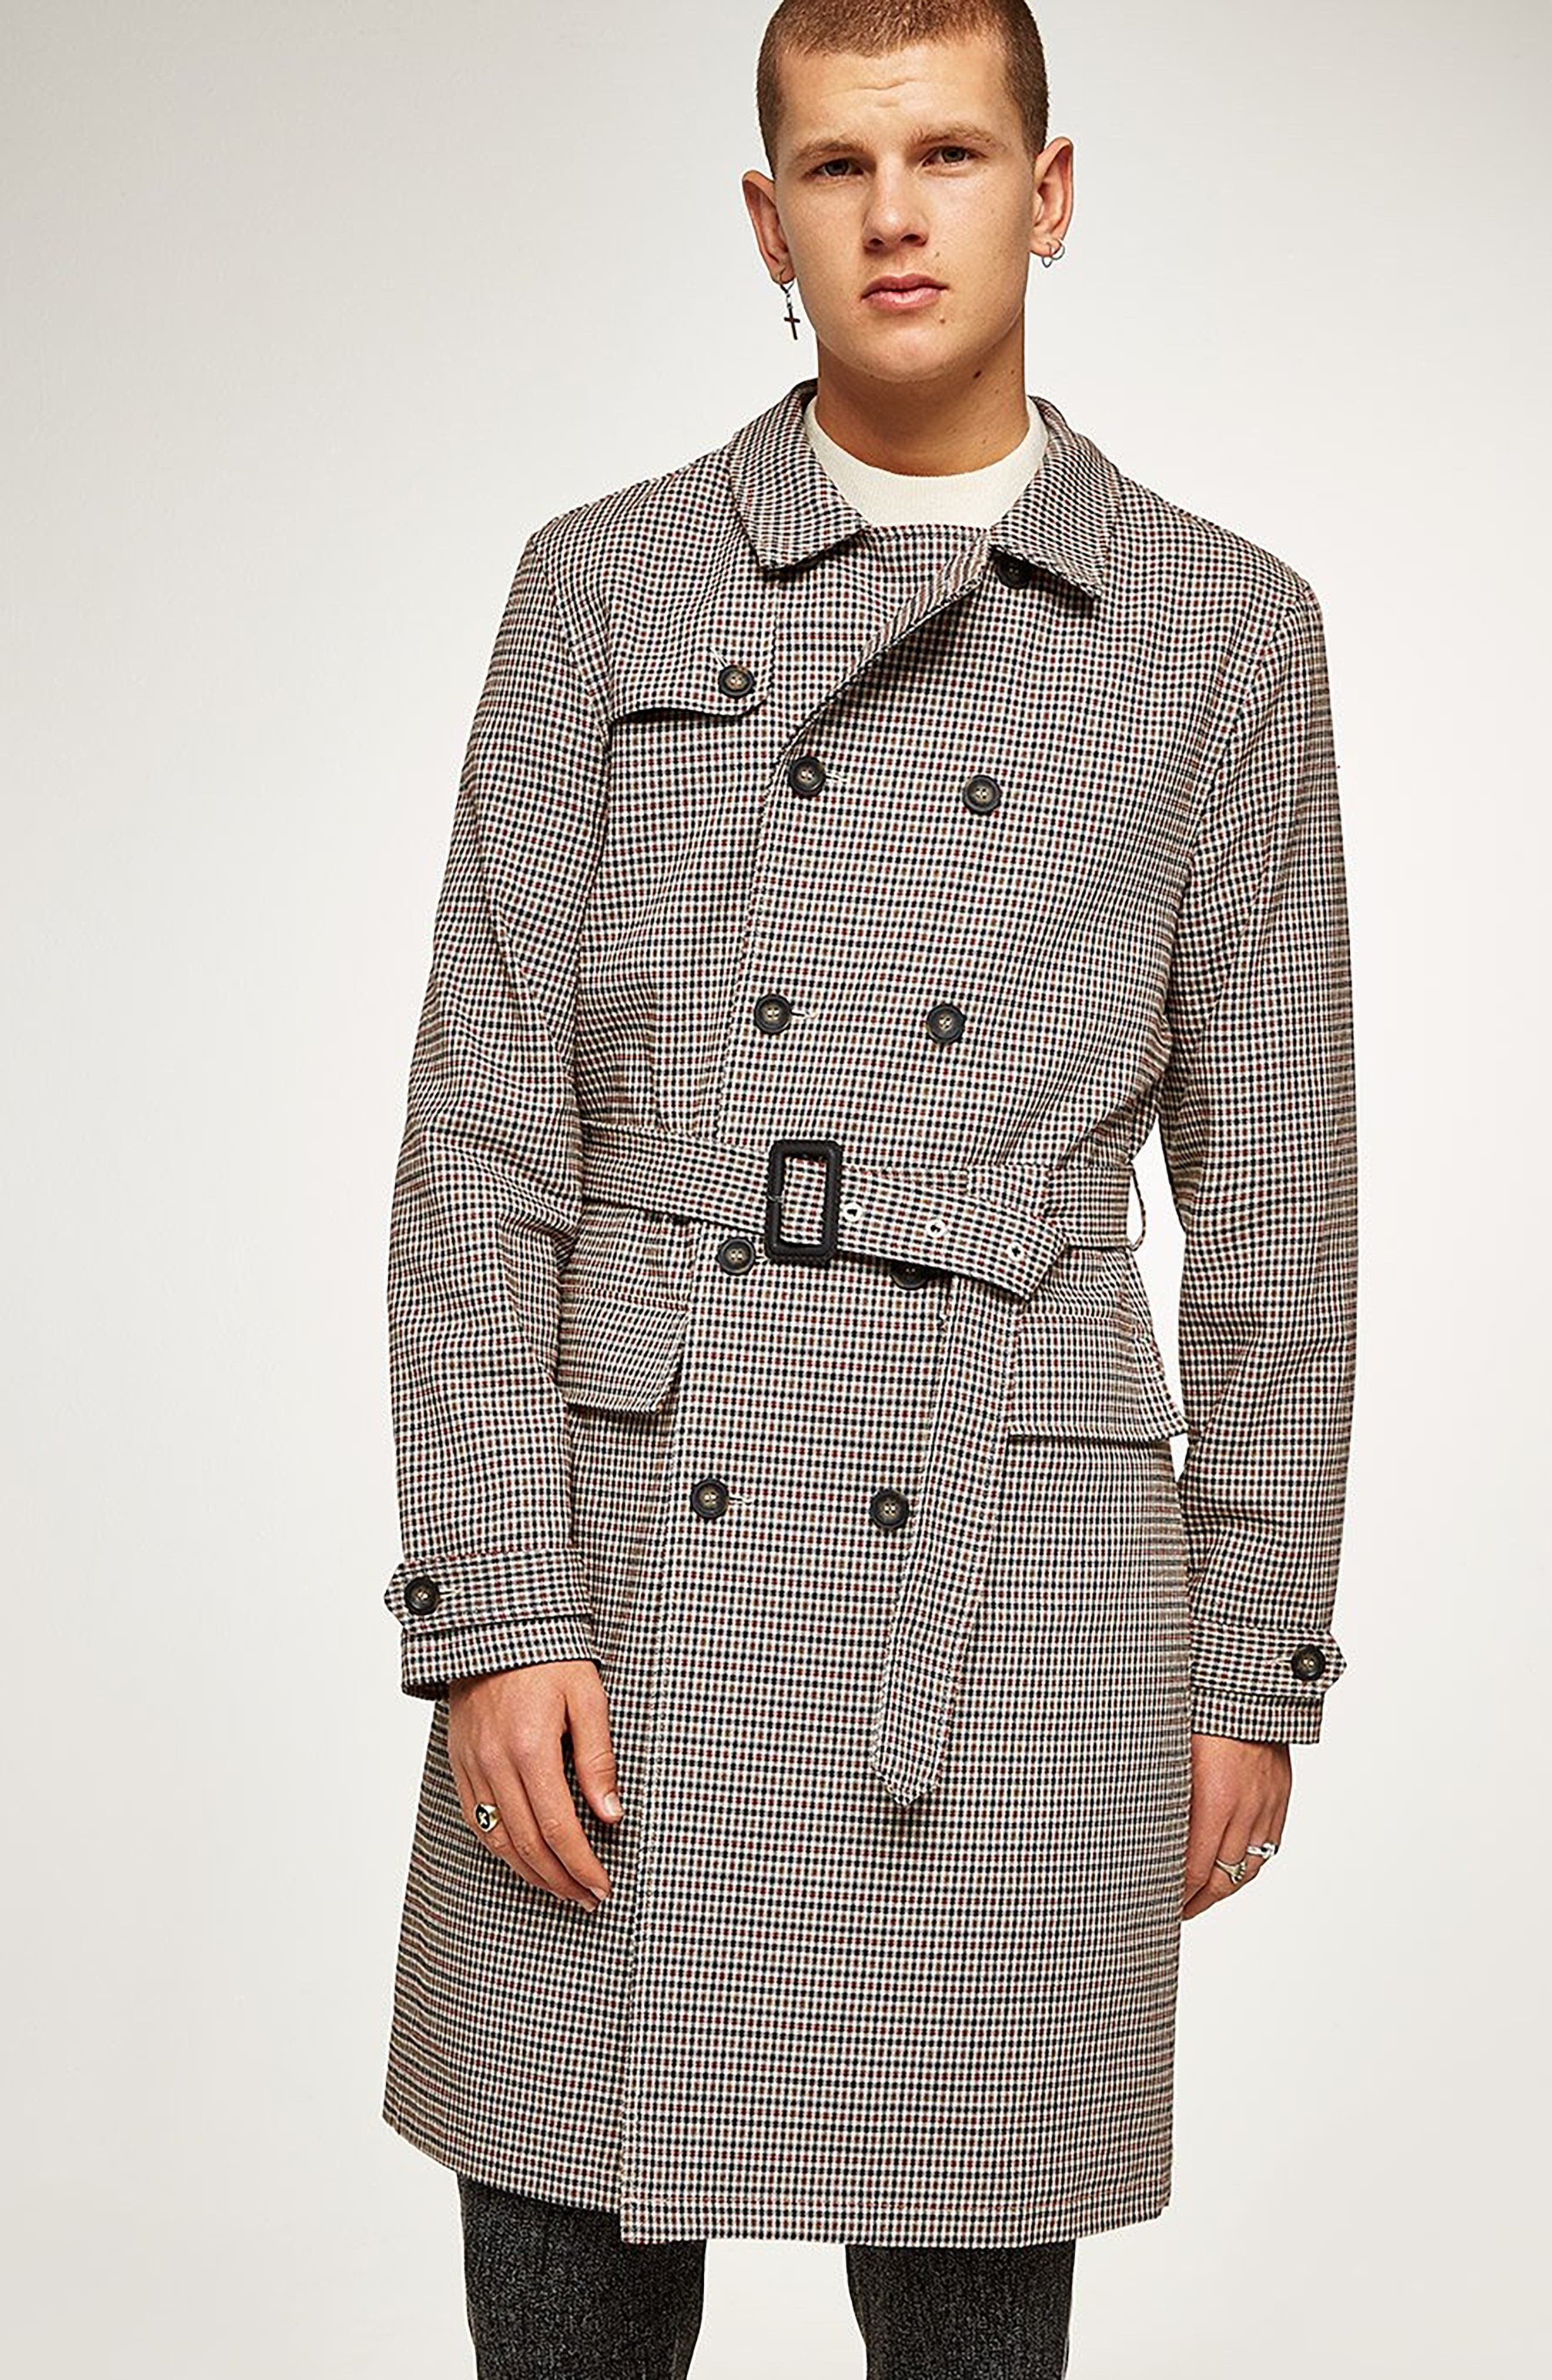 Houndstooth Trench Coat,                             Alternate thumbnail 6, color,                             BROWN MULTI